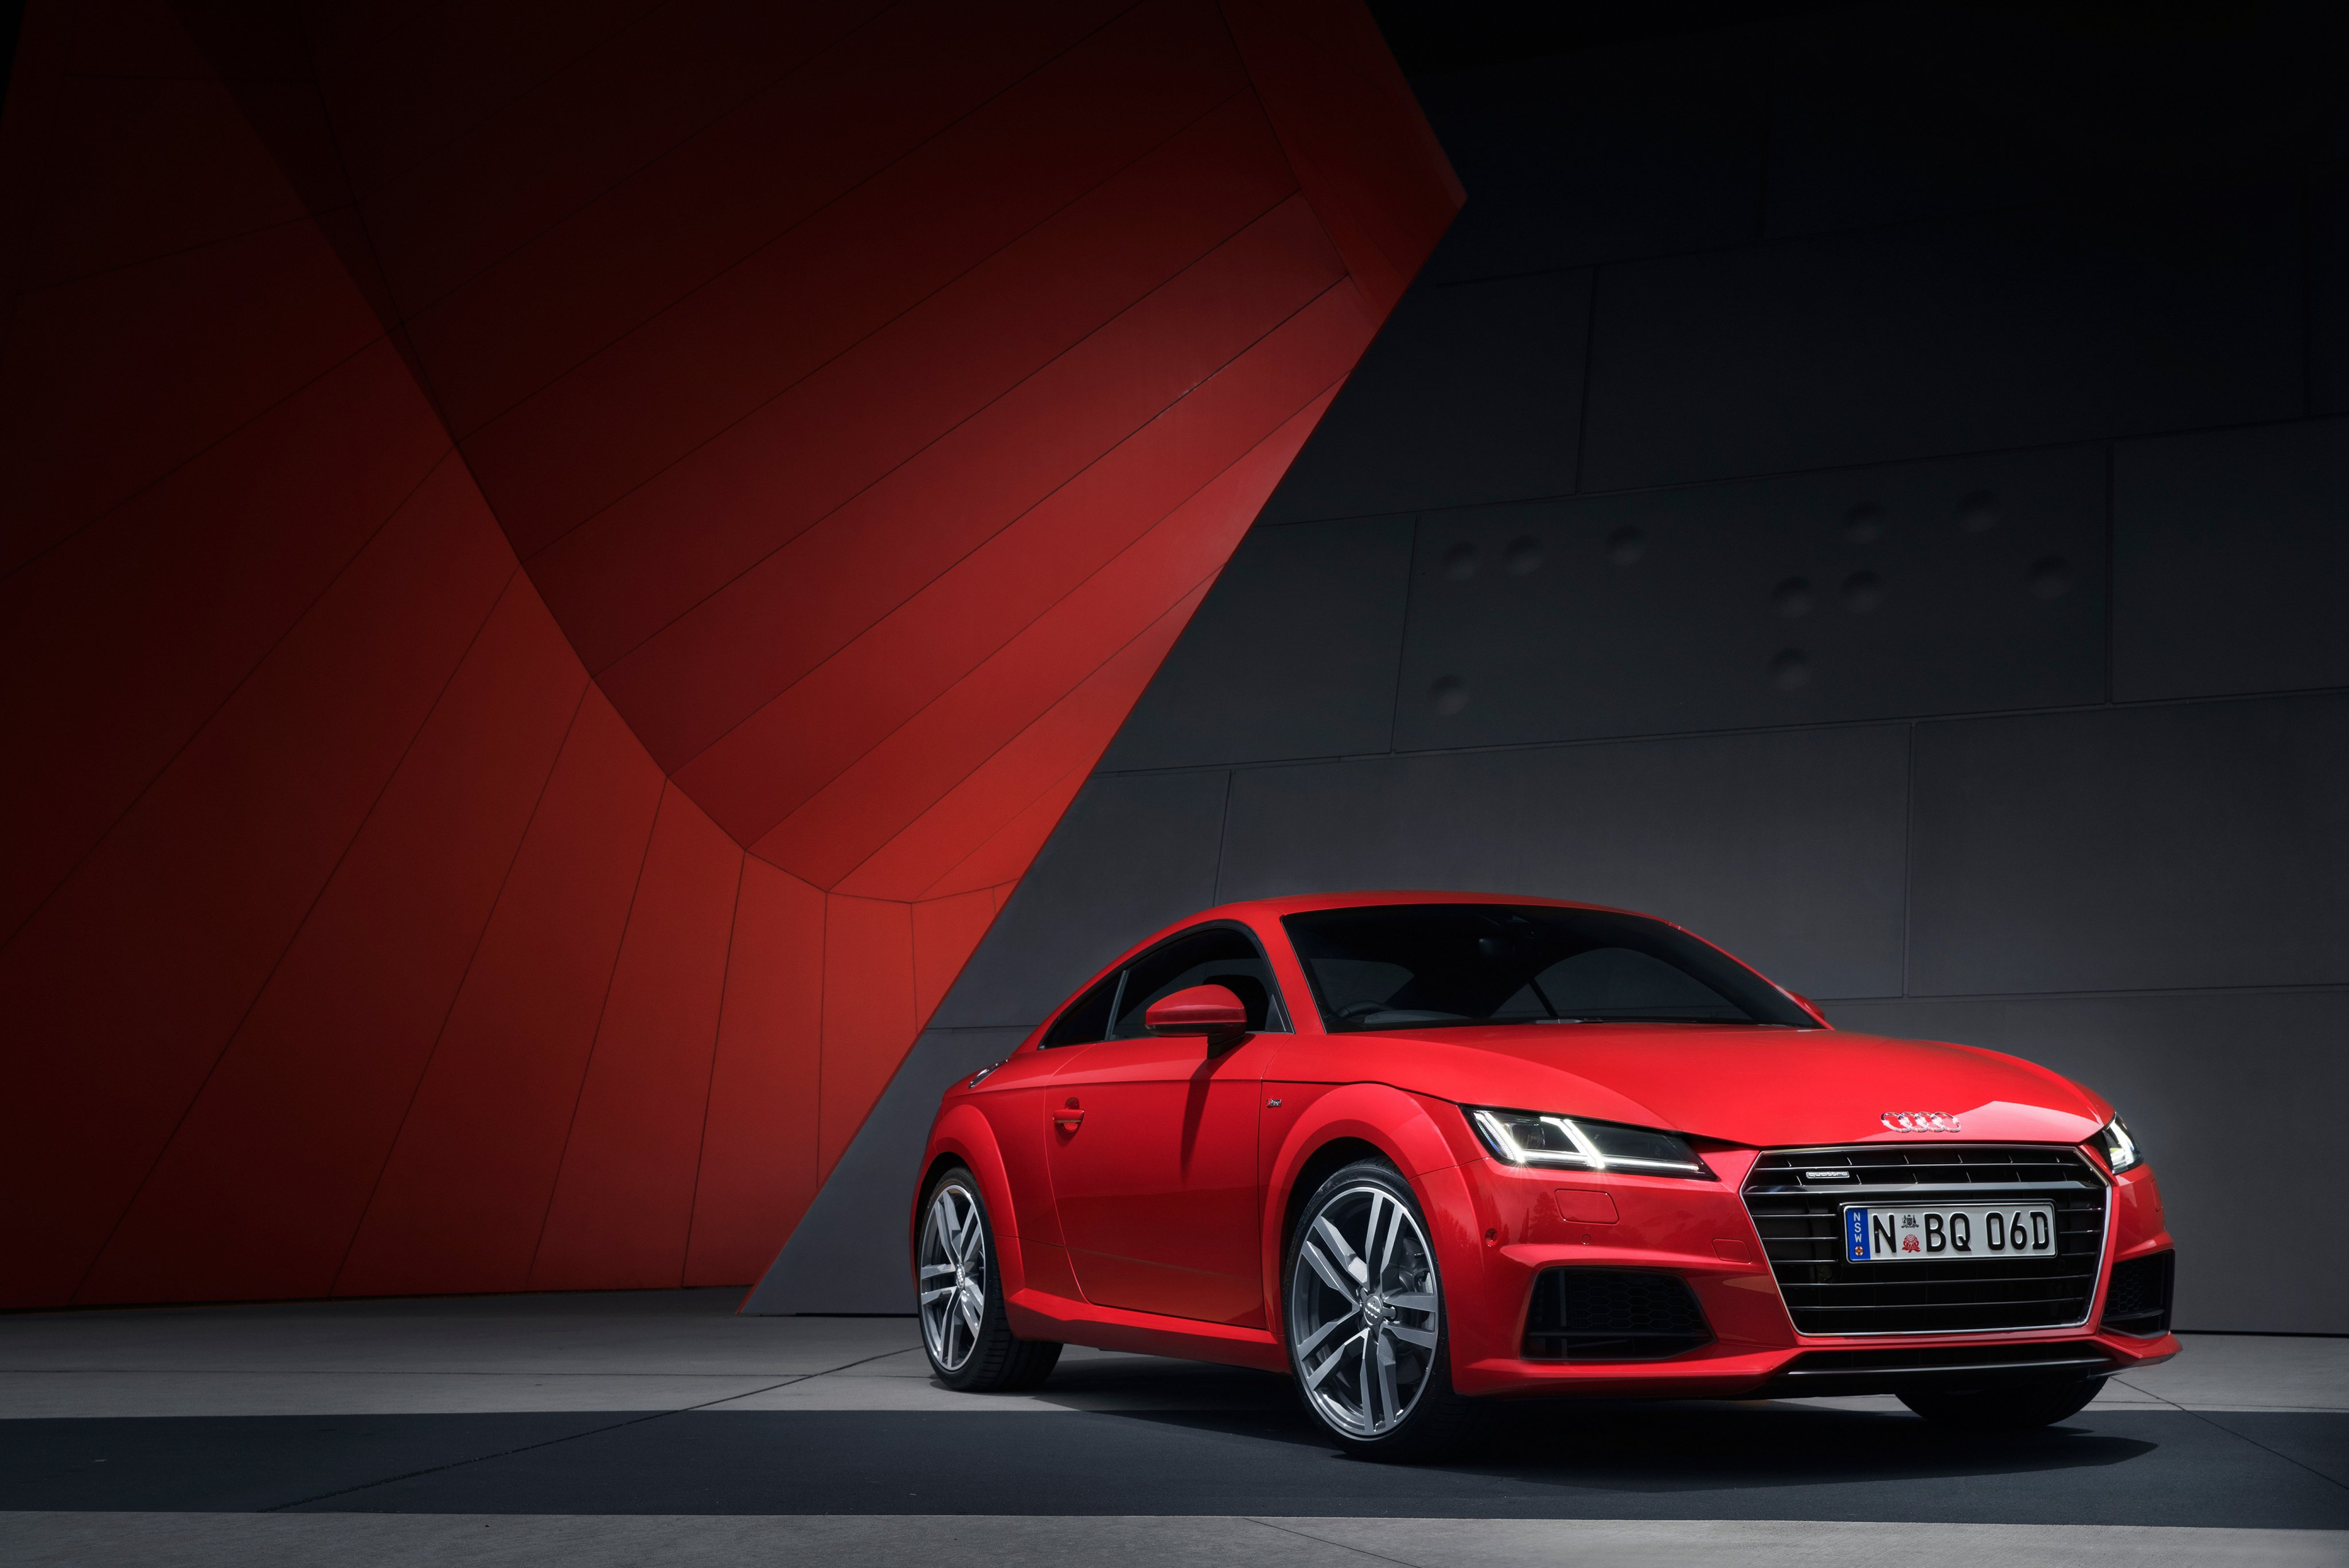 Audi Wallpaper free download   PixelsTalk Net Audi Wallpapers Images Free